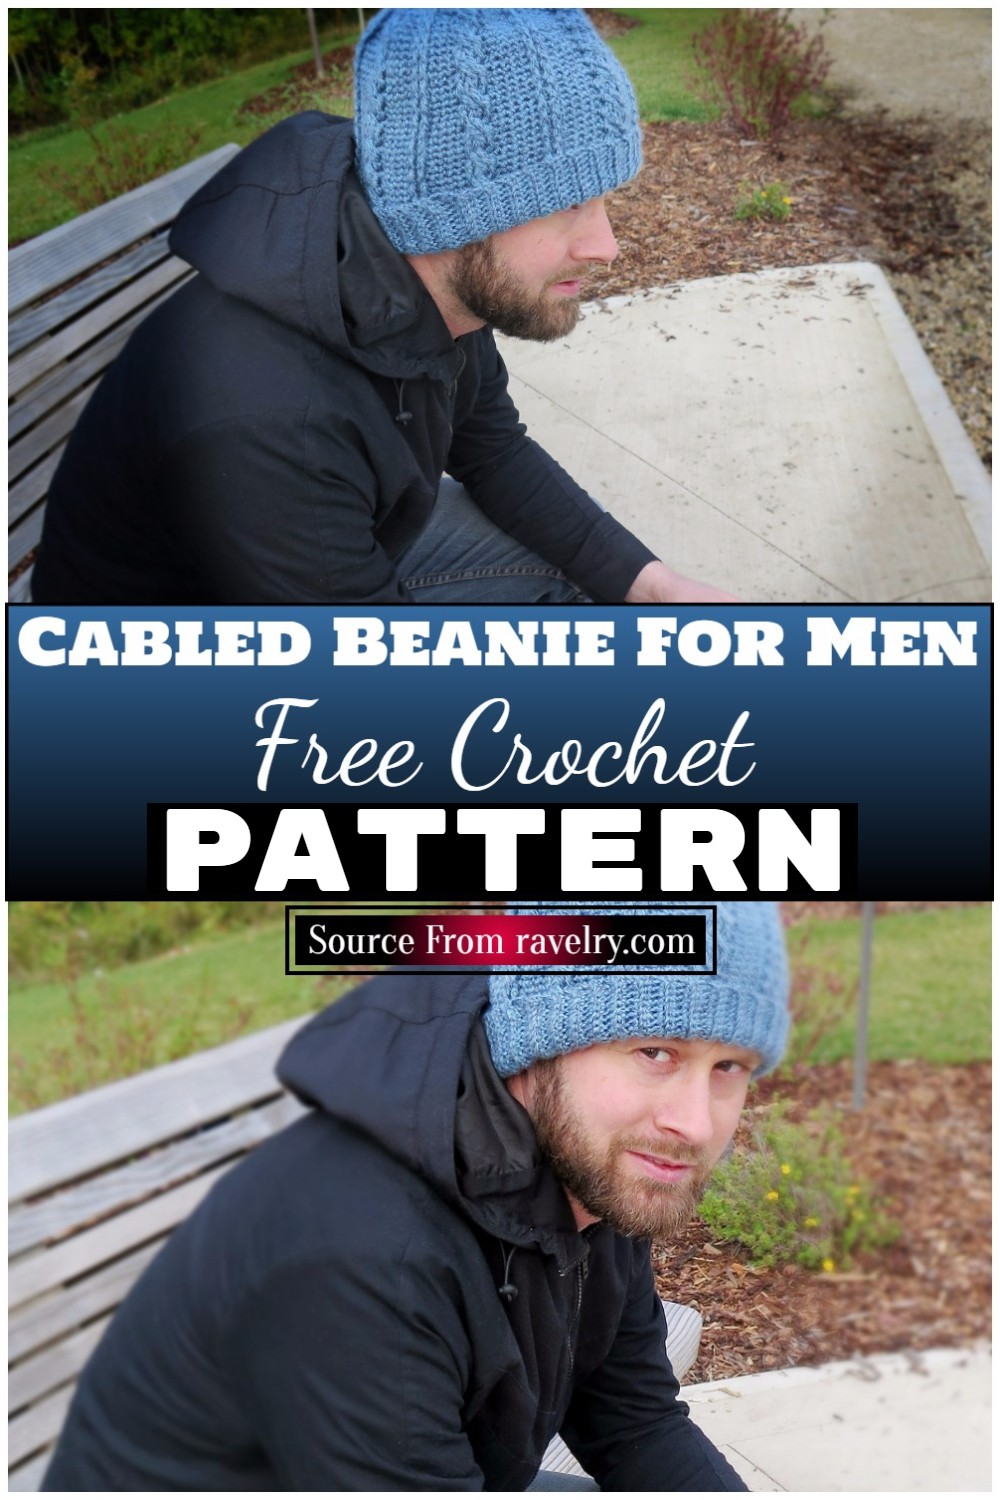 Free Crochet Cabled Beanie For Men 1